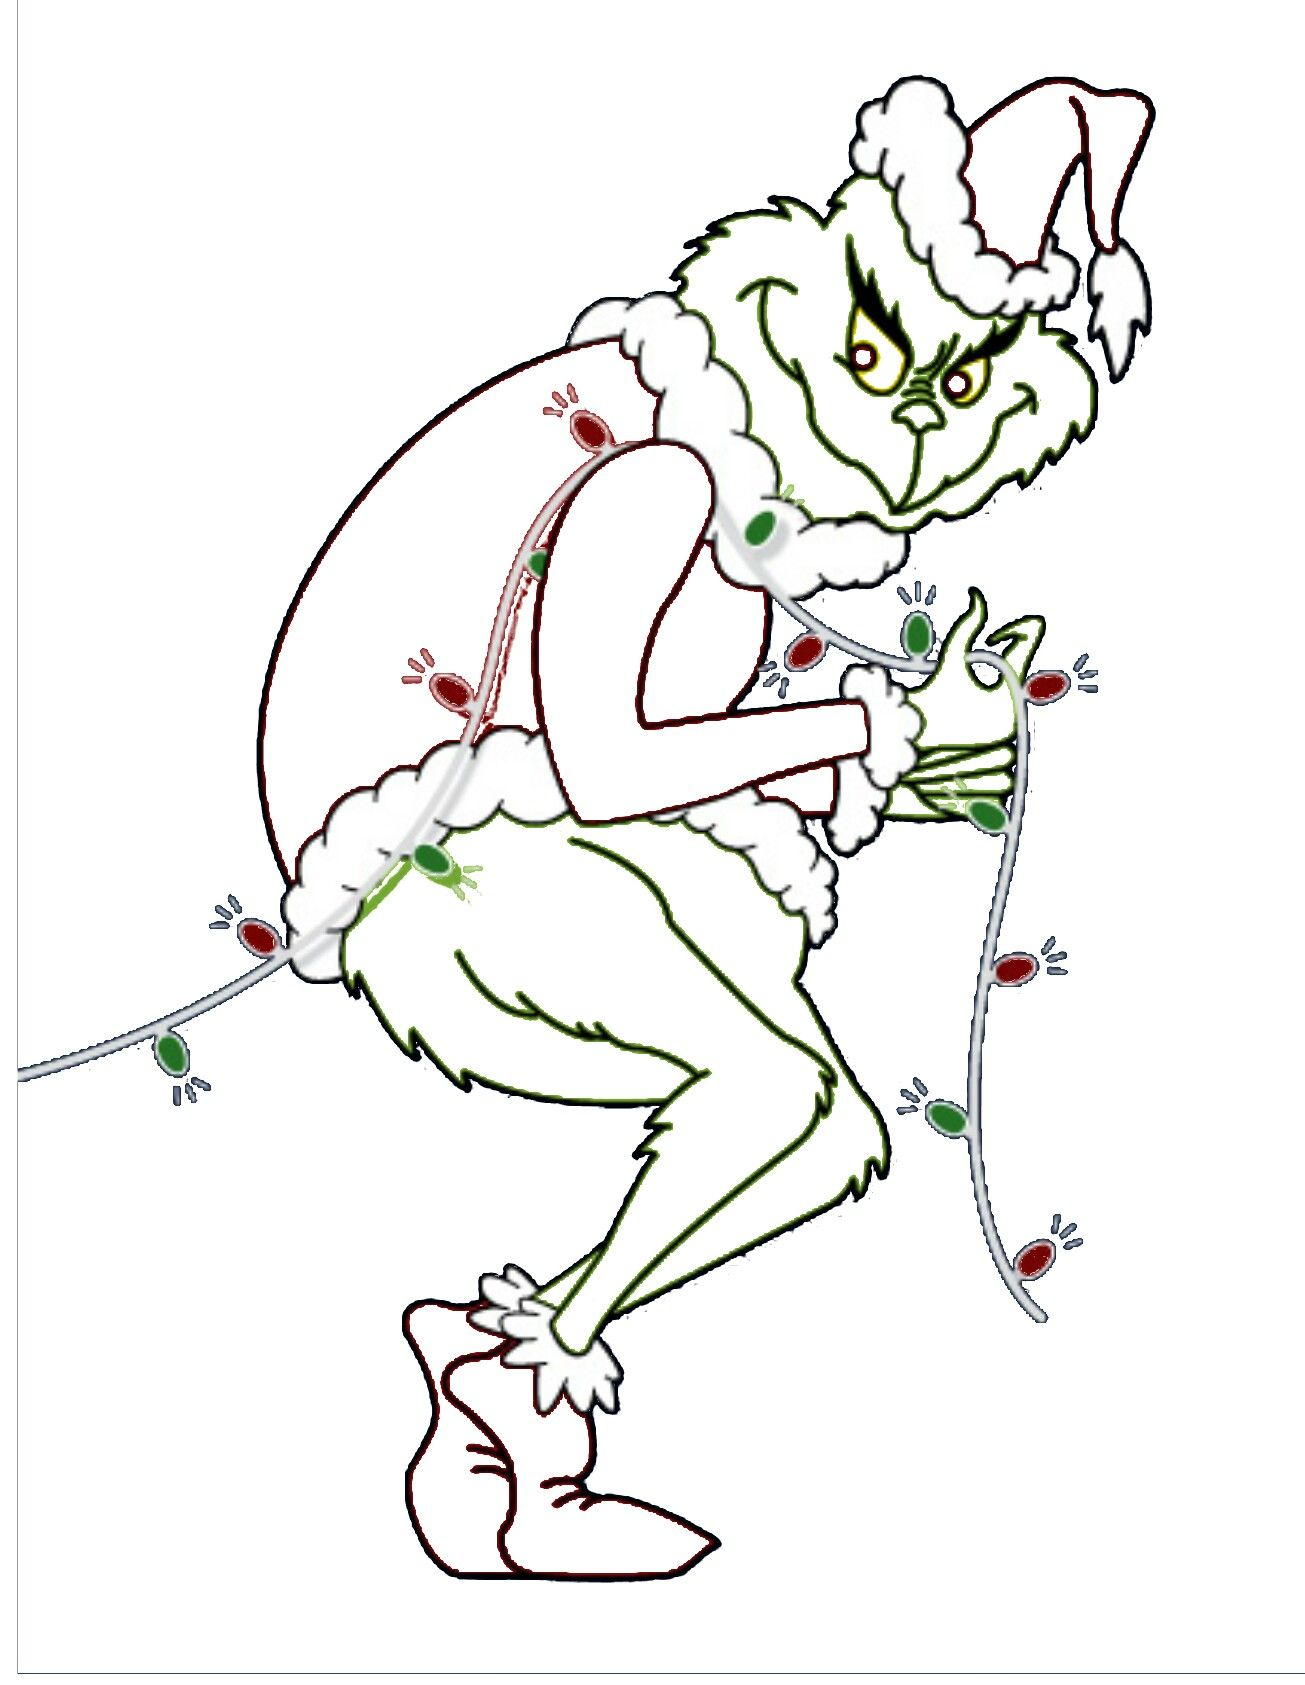 Grinch Outline Grinch Stealing Lights Grinch Christmas Decorations Grinch Decorations